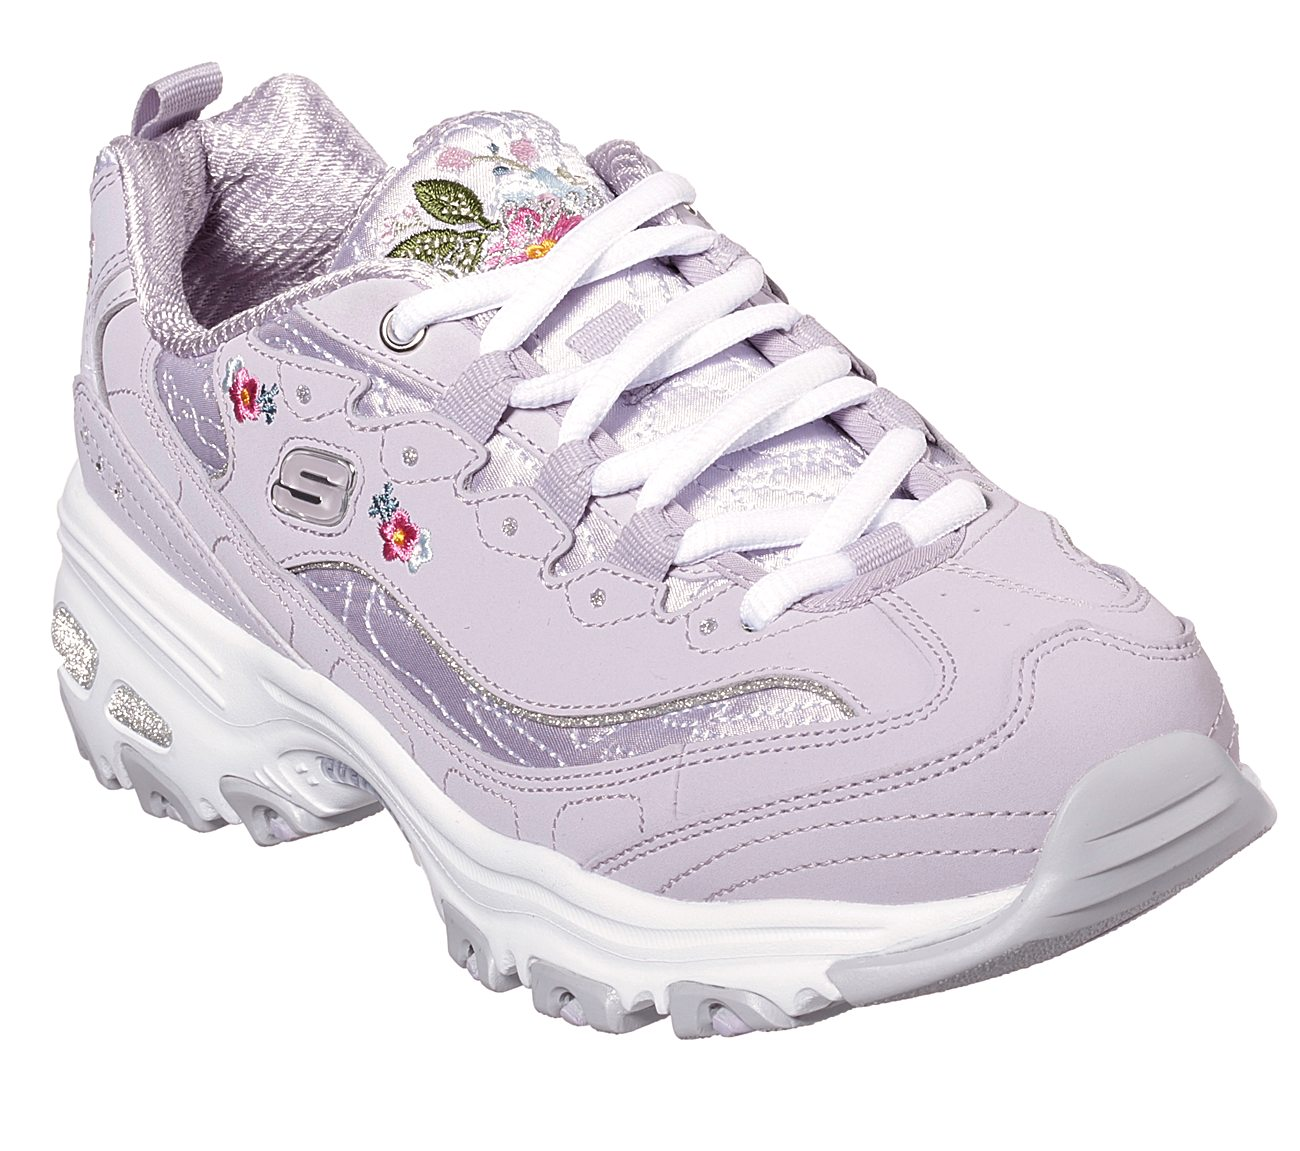 75ba42fc22e5 Buy SKECHERS D Lites - Bright Blossoms D Lites Shoes only  70.00